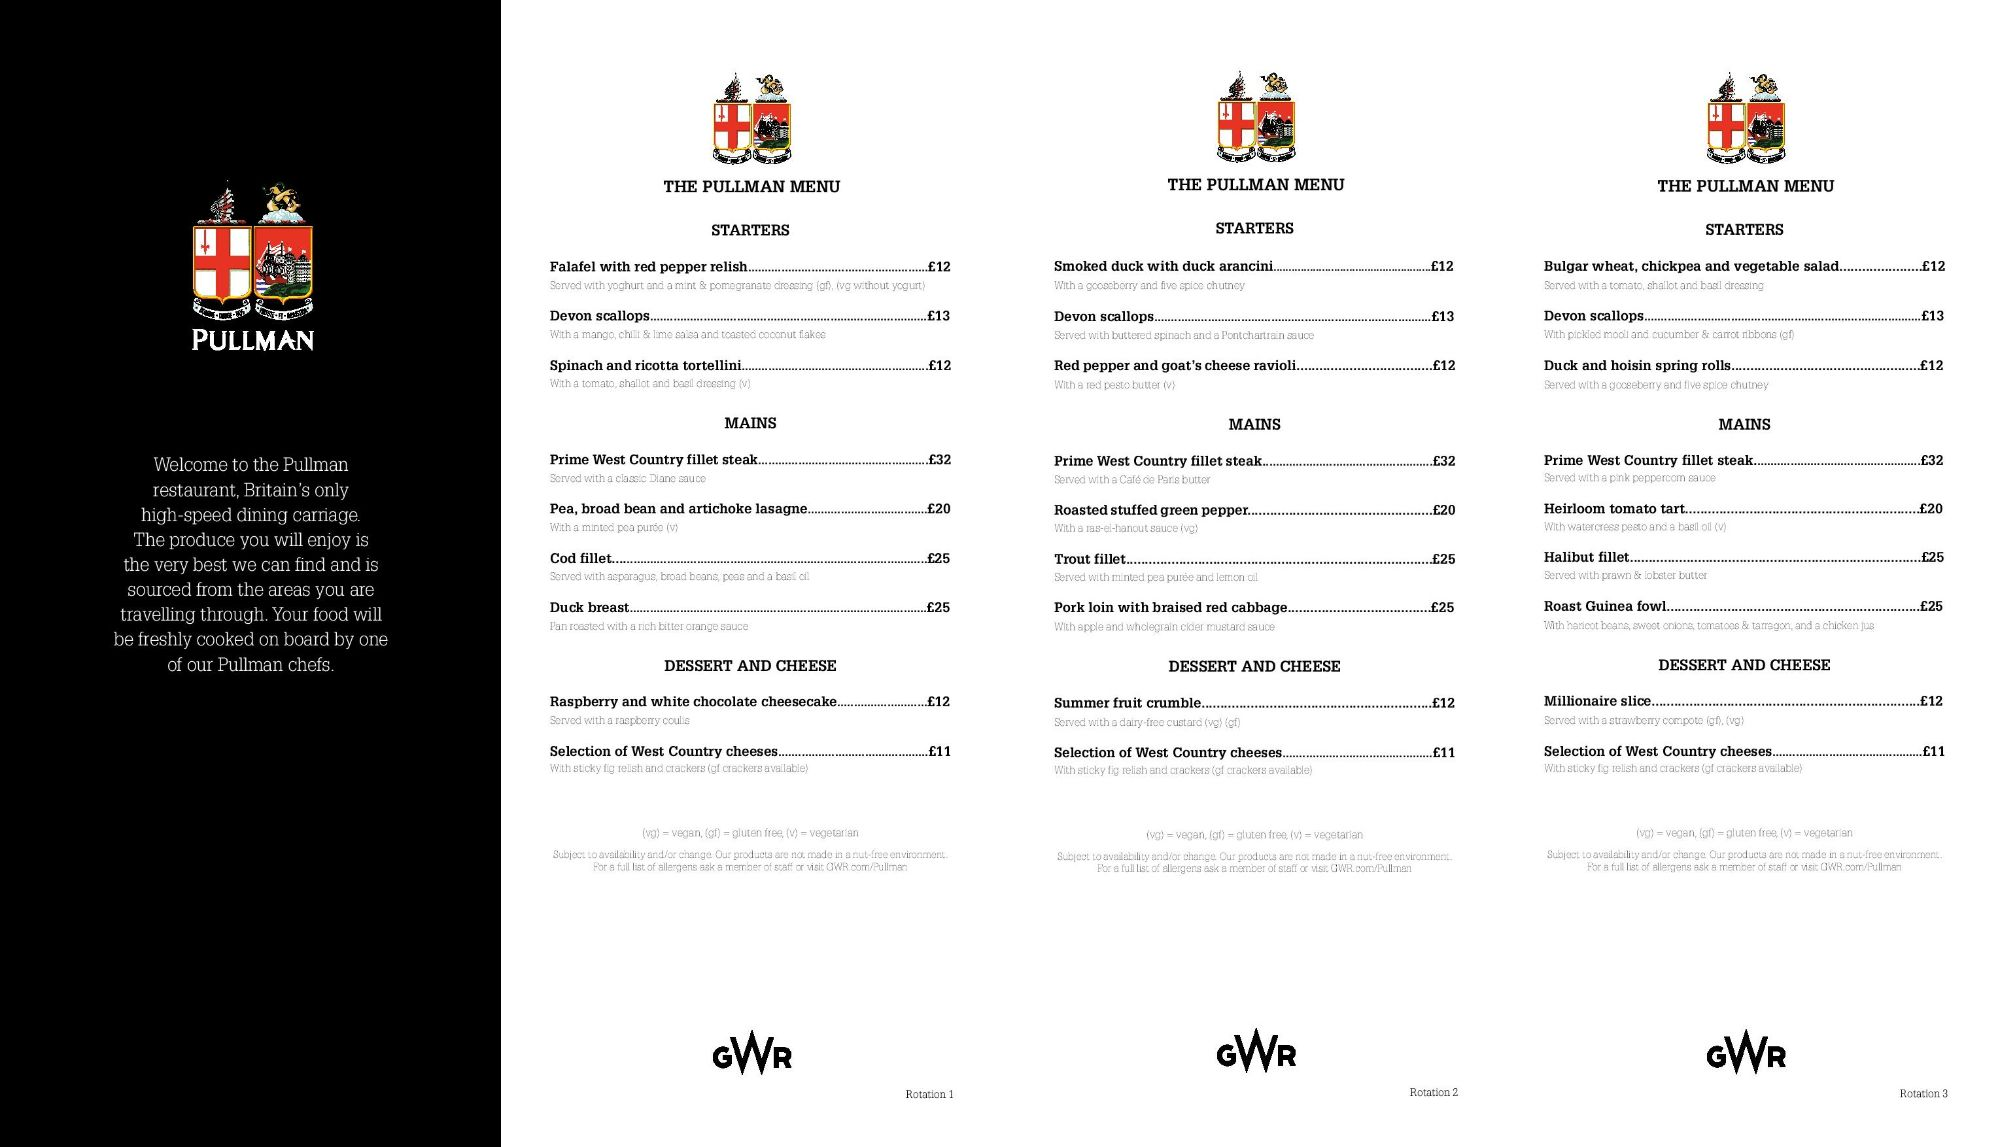 Image showing sample of the Great Western Railway Pullman dining lunch and dinner menu circa 2019.